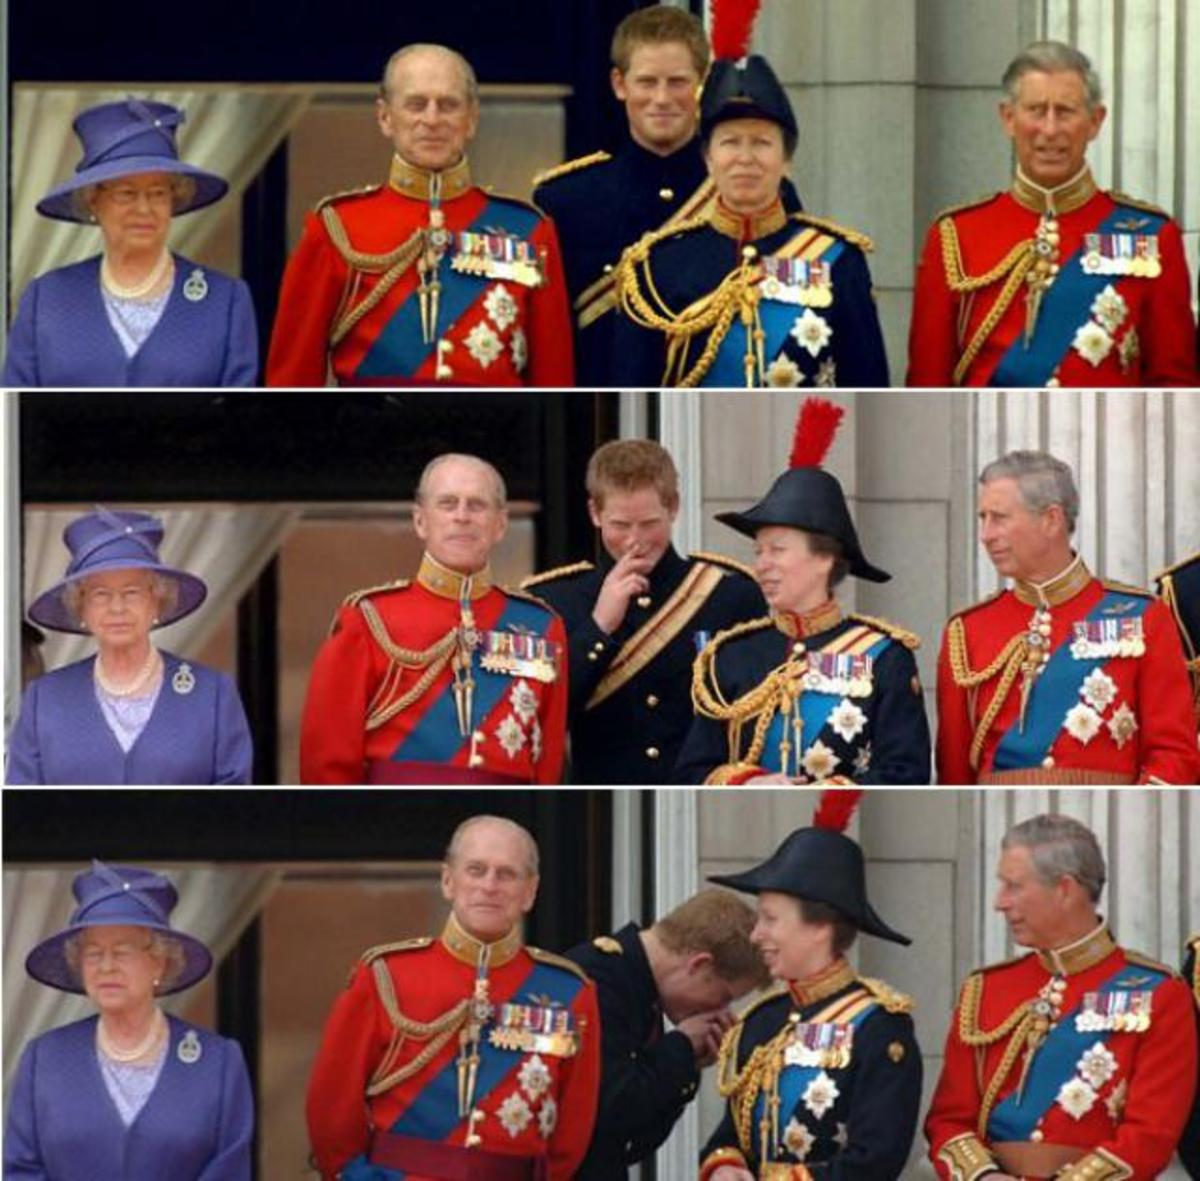 Prince Phillip Looks Guilty And Happy. The Royal Wedding Farty! 2011